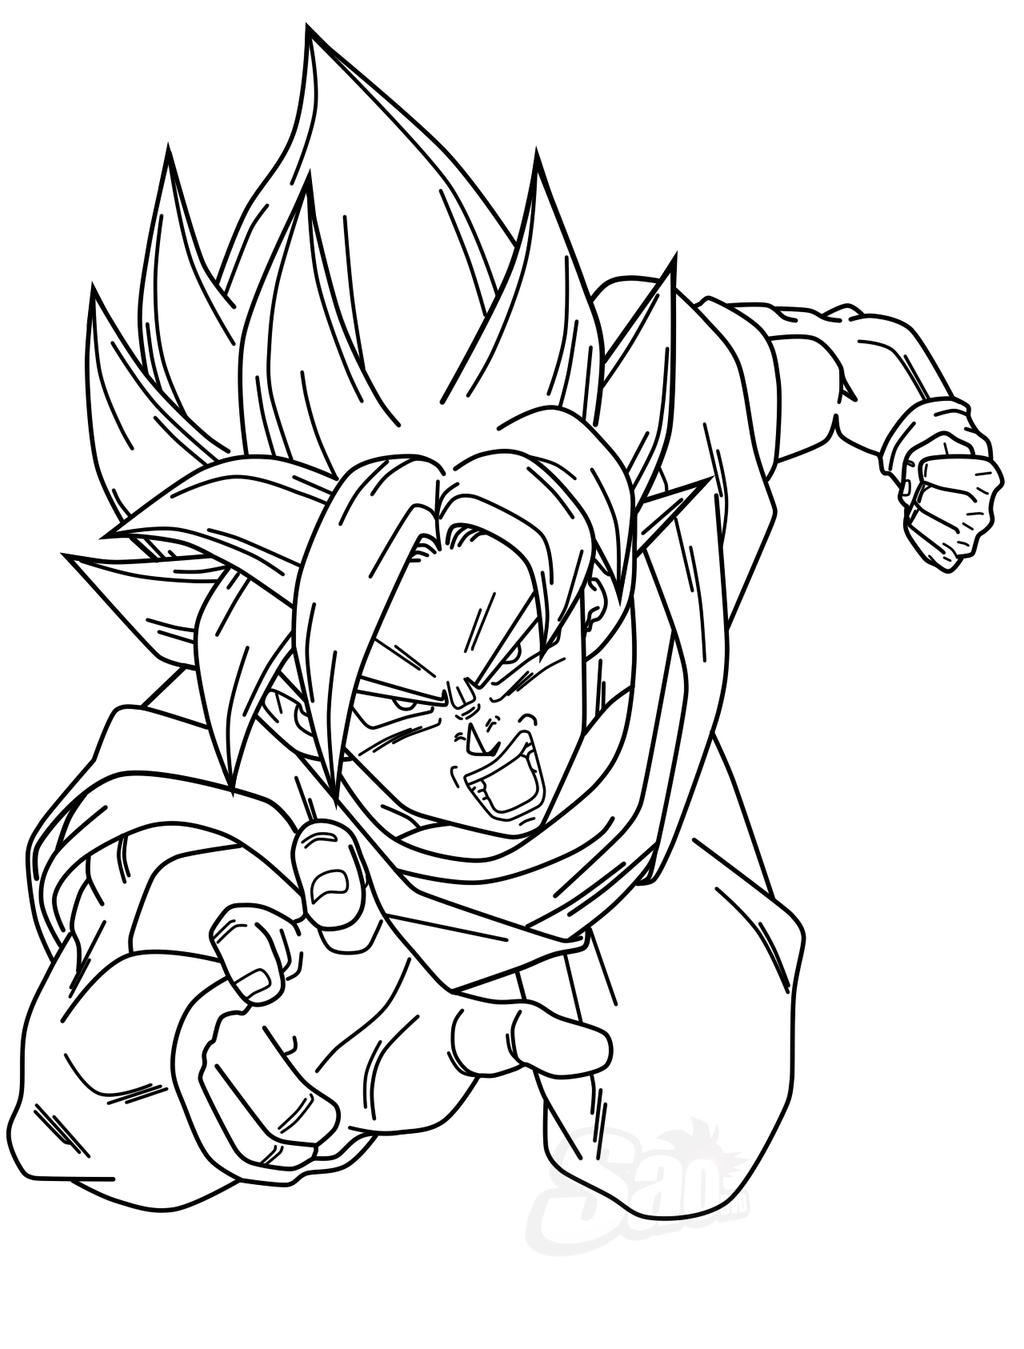 Goku SSGGSS - Lineart by SaoDVD on DeviantArt